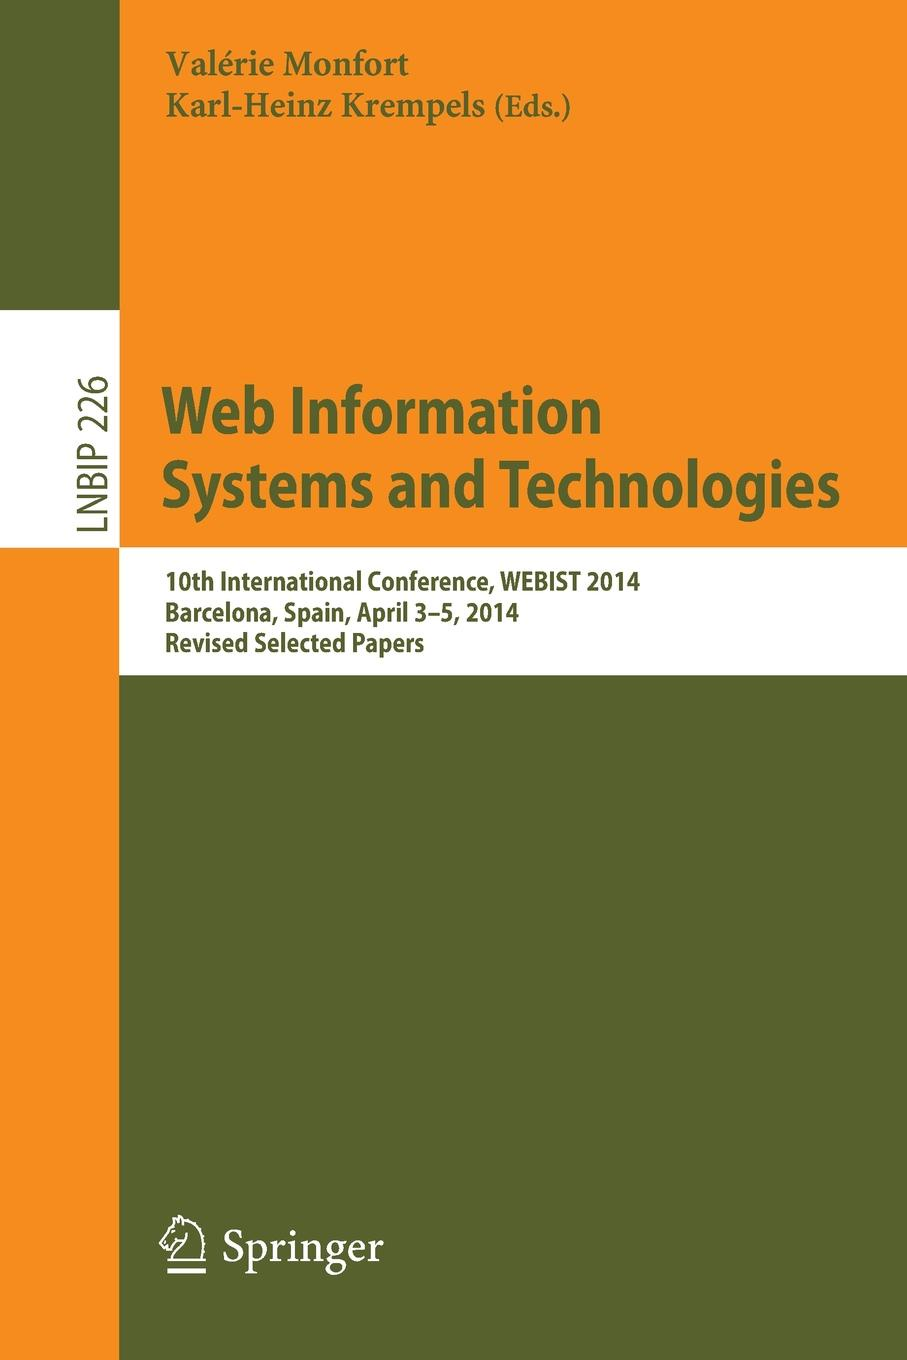 Web Information Systems and Technologies. 10th International Conference, WEBIST 2014, Barcelona, Spain, April 3-5, 2014, Revised Selected Papers snehal joglekar web technologies